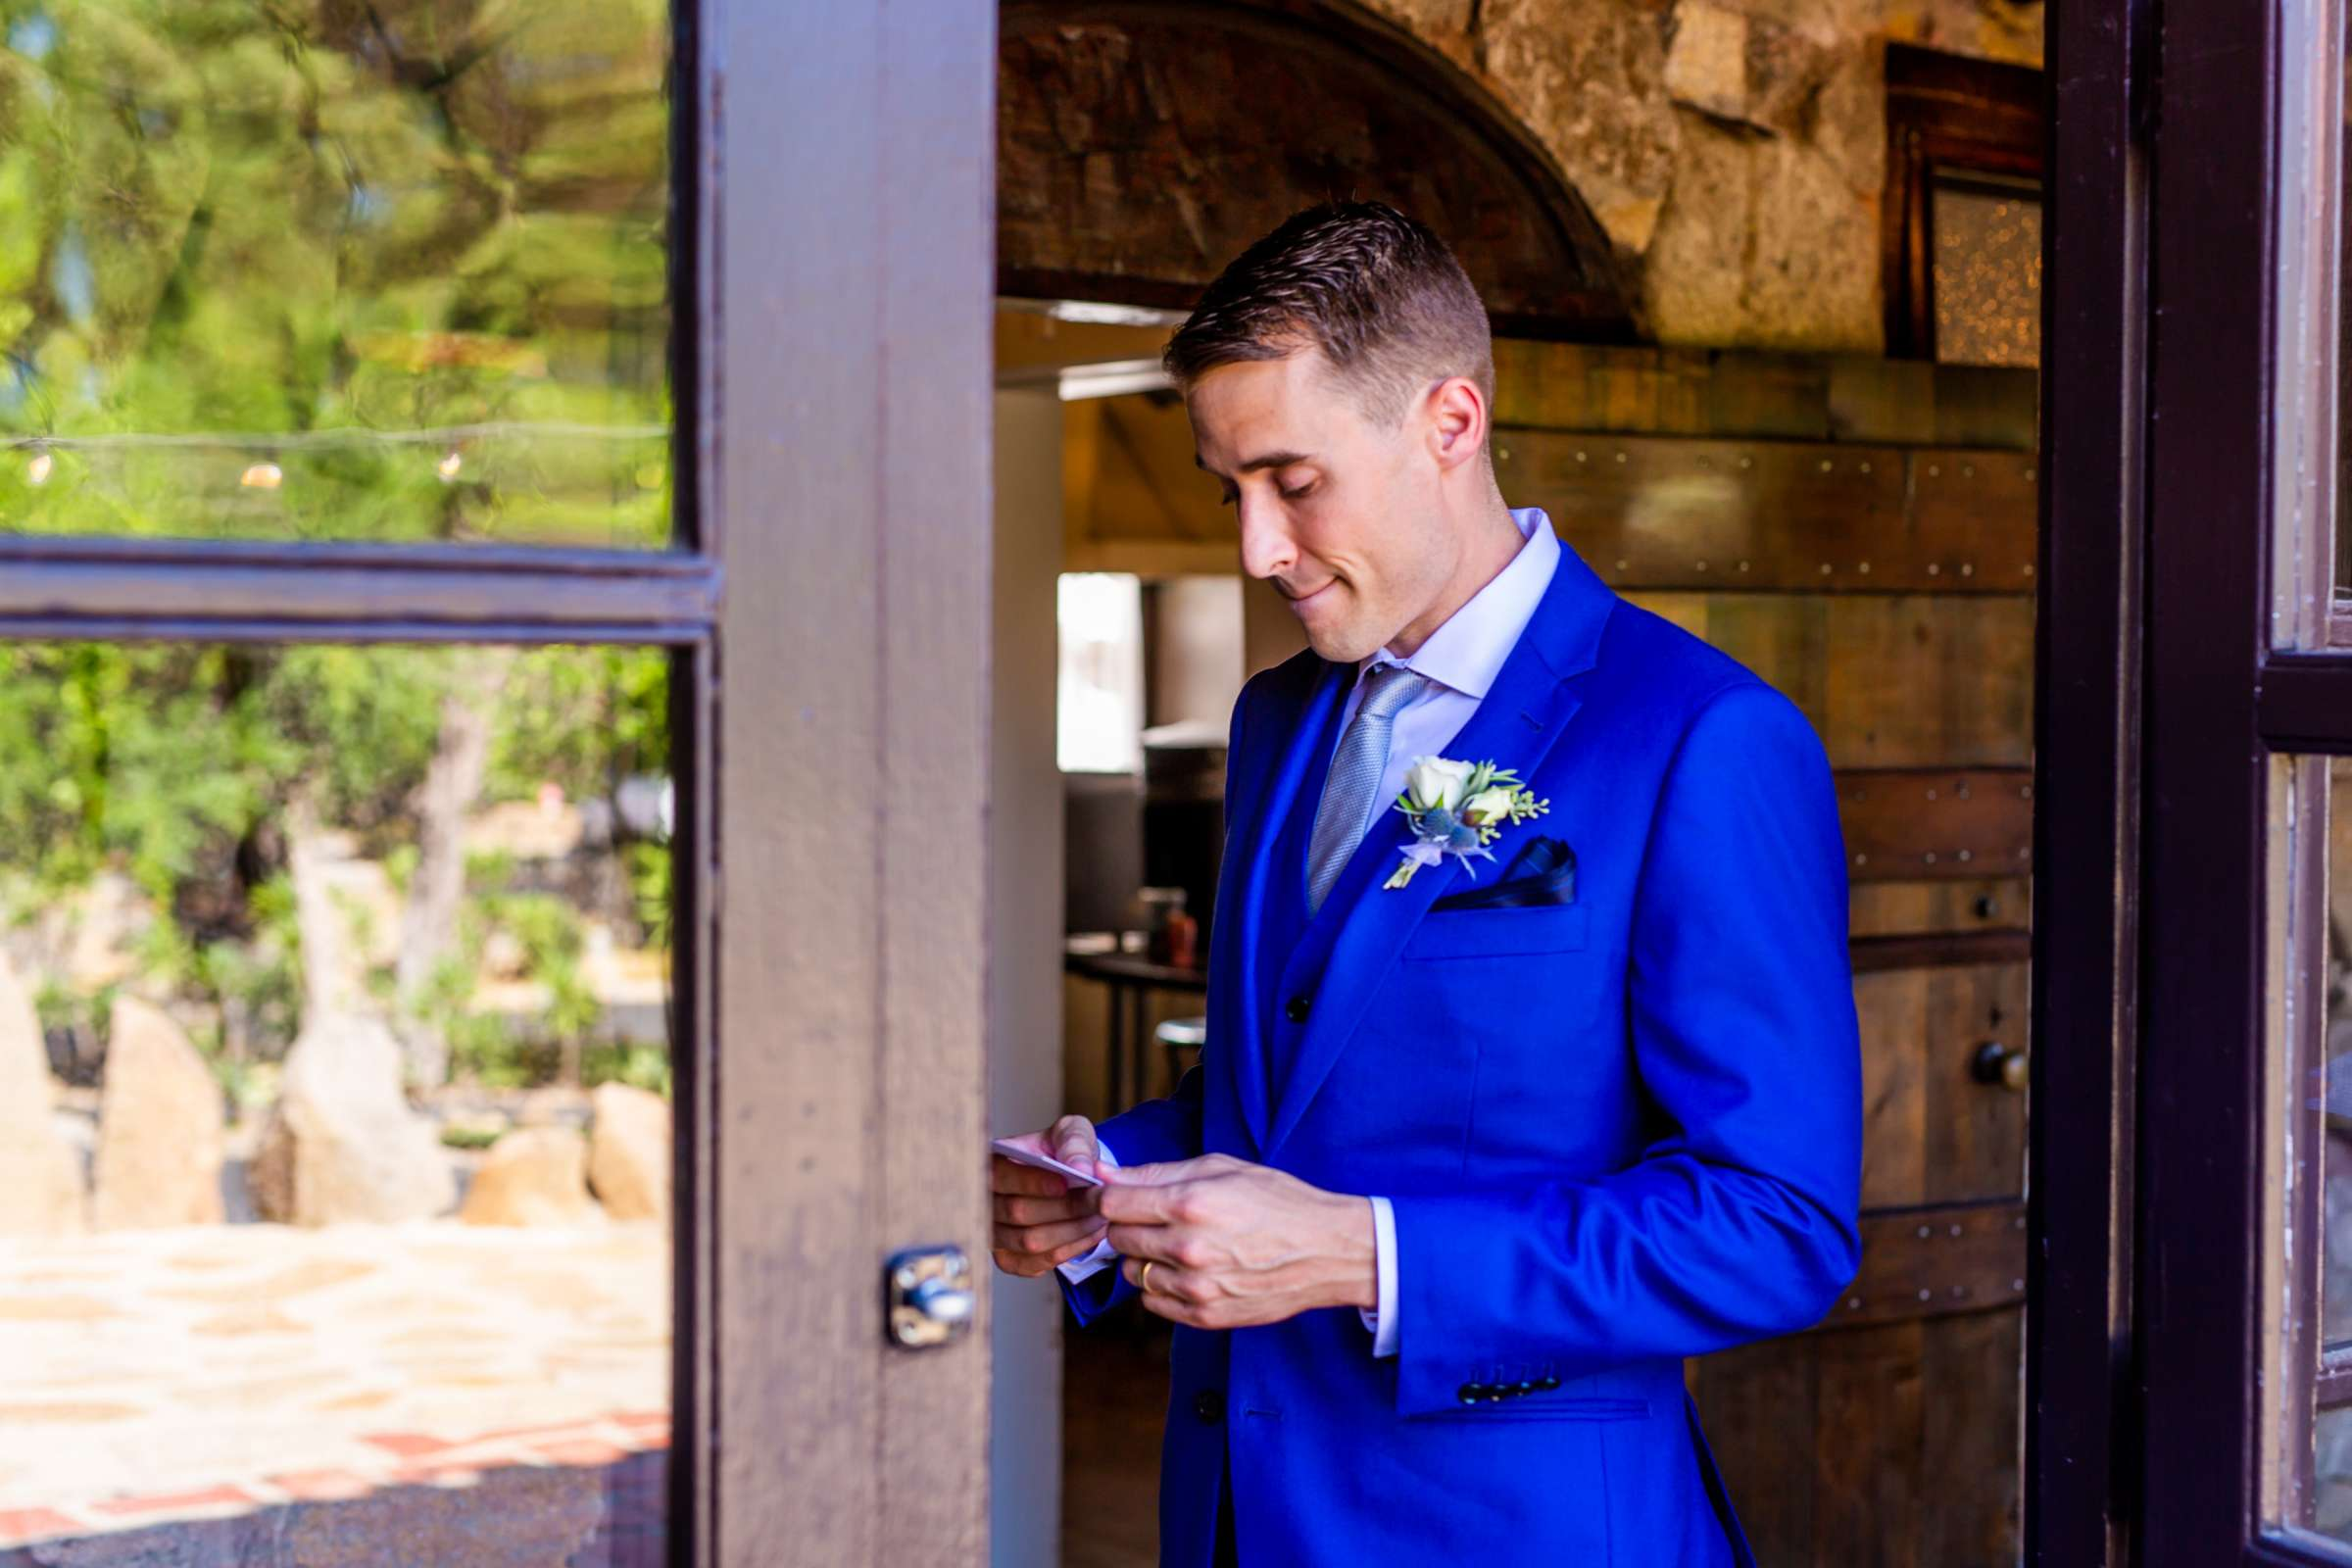 Mt Woodson Castle Wedding coordinated by I Do Weddings, Aya and Jared Wedding Photo #486914 by True Photography